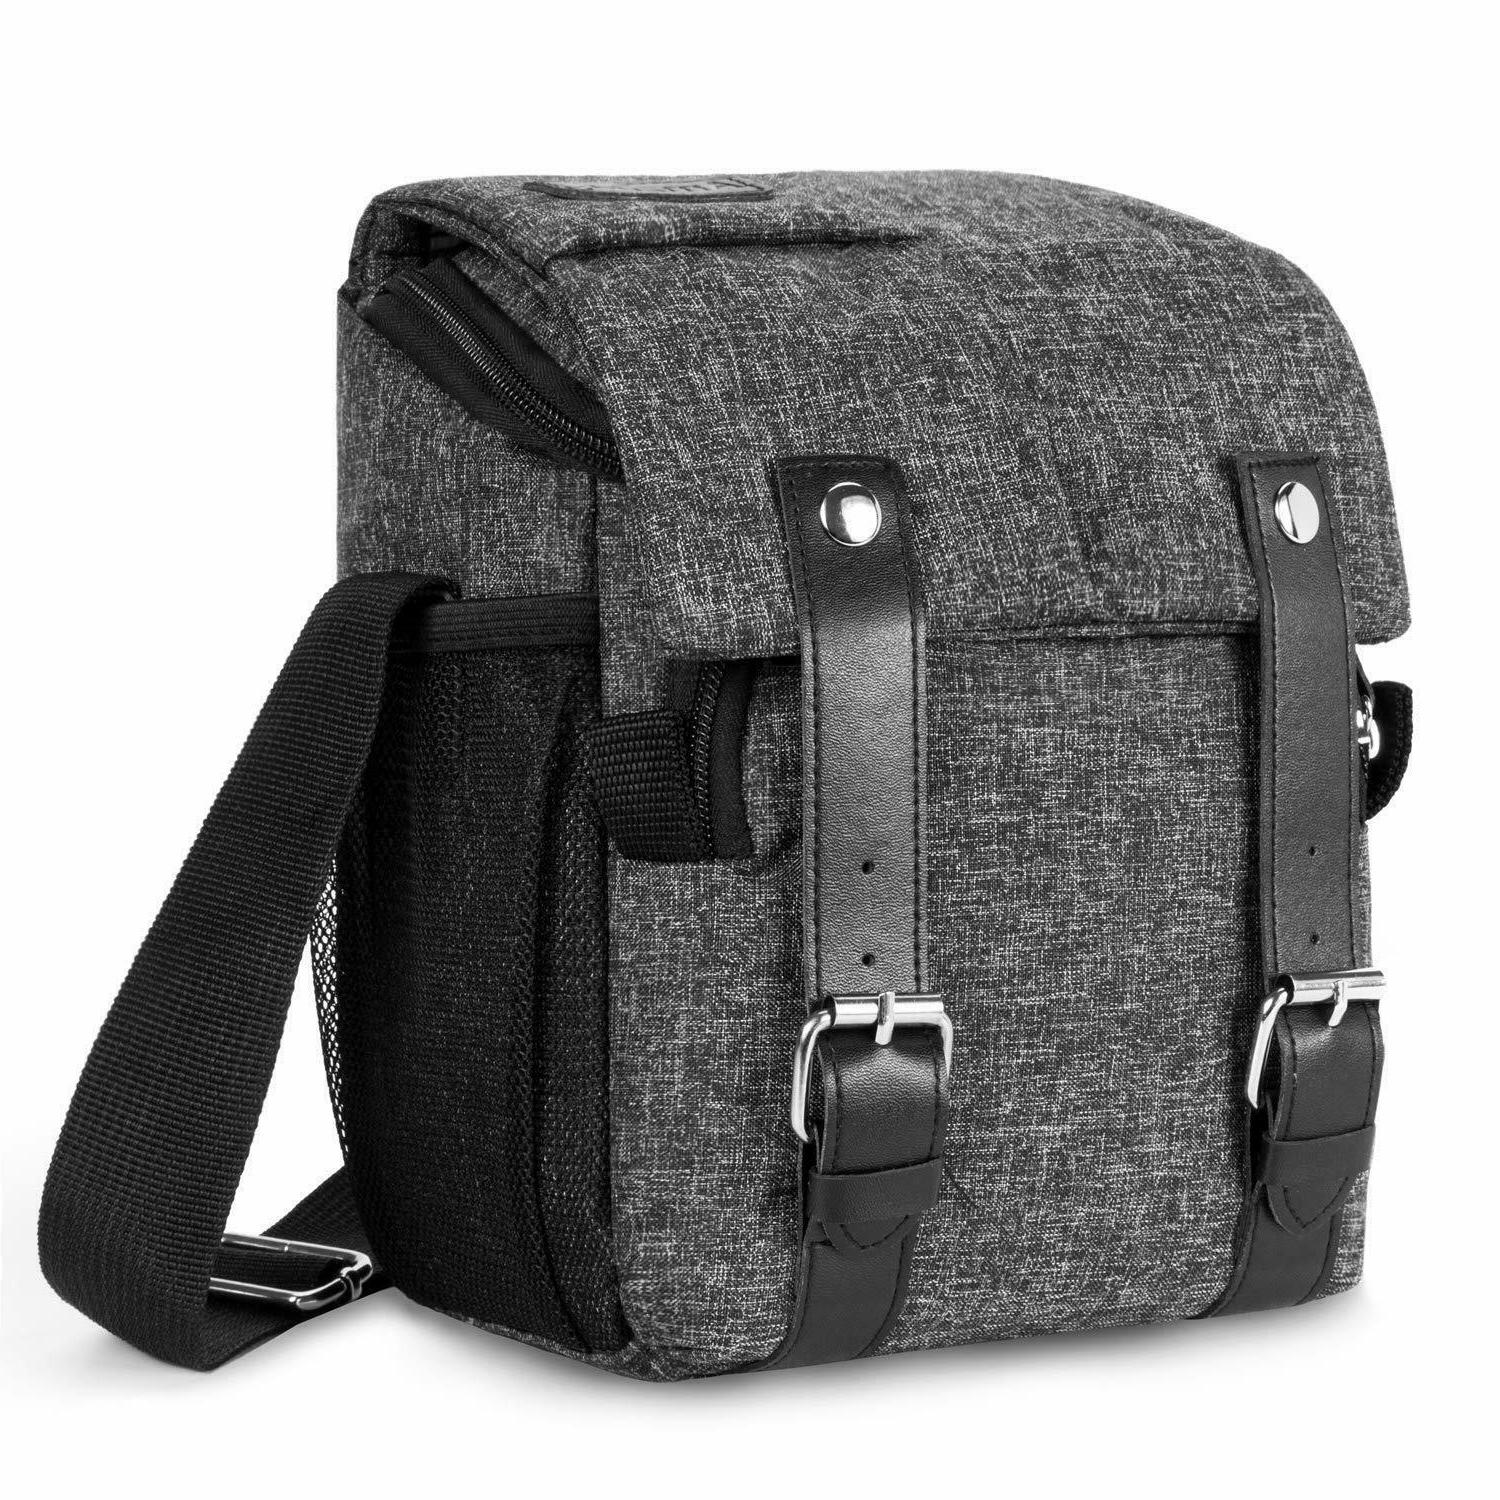 dslr slr camera shoulder bag waterproof shockproof